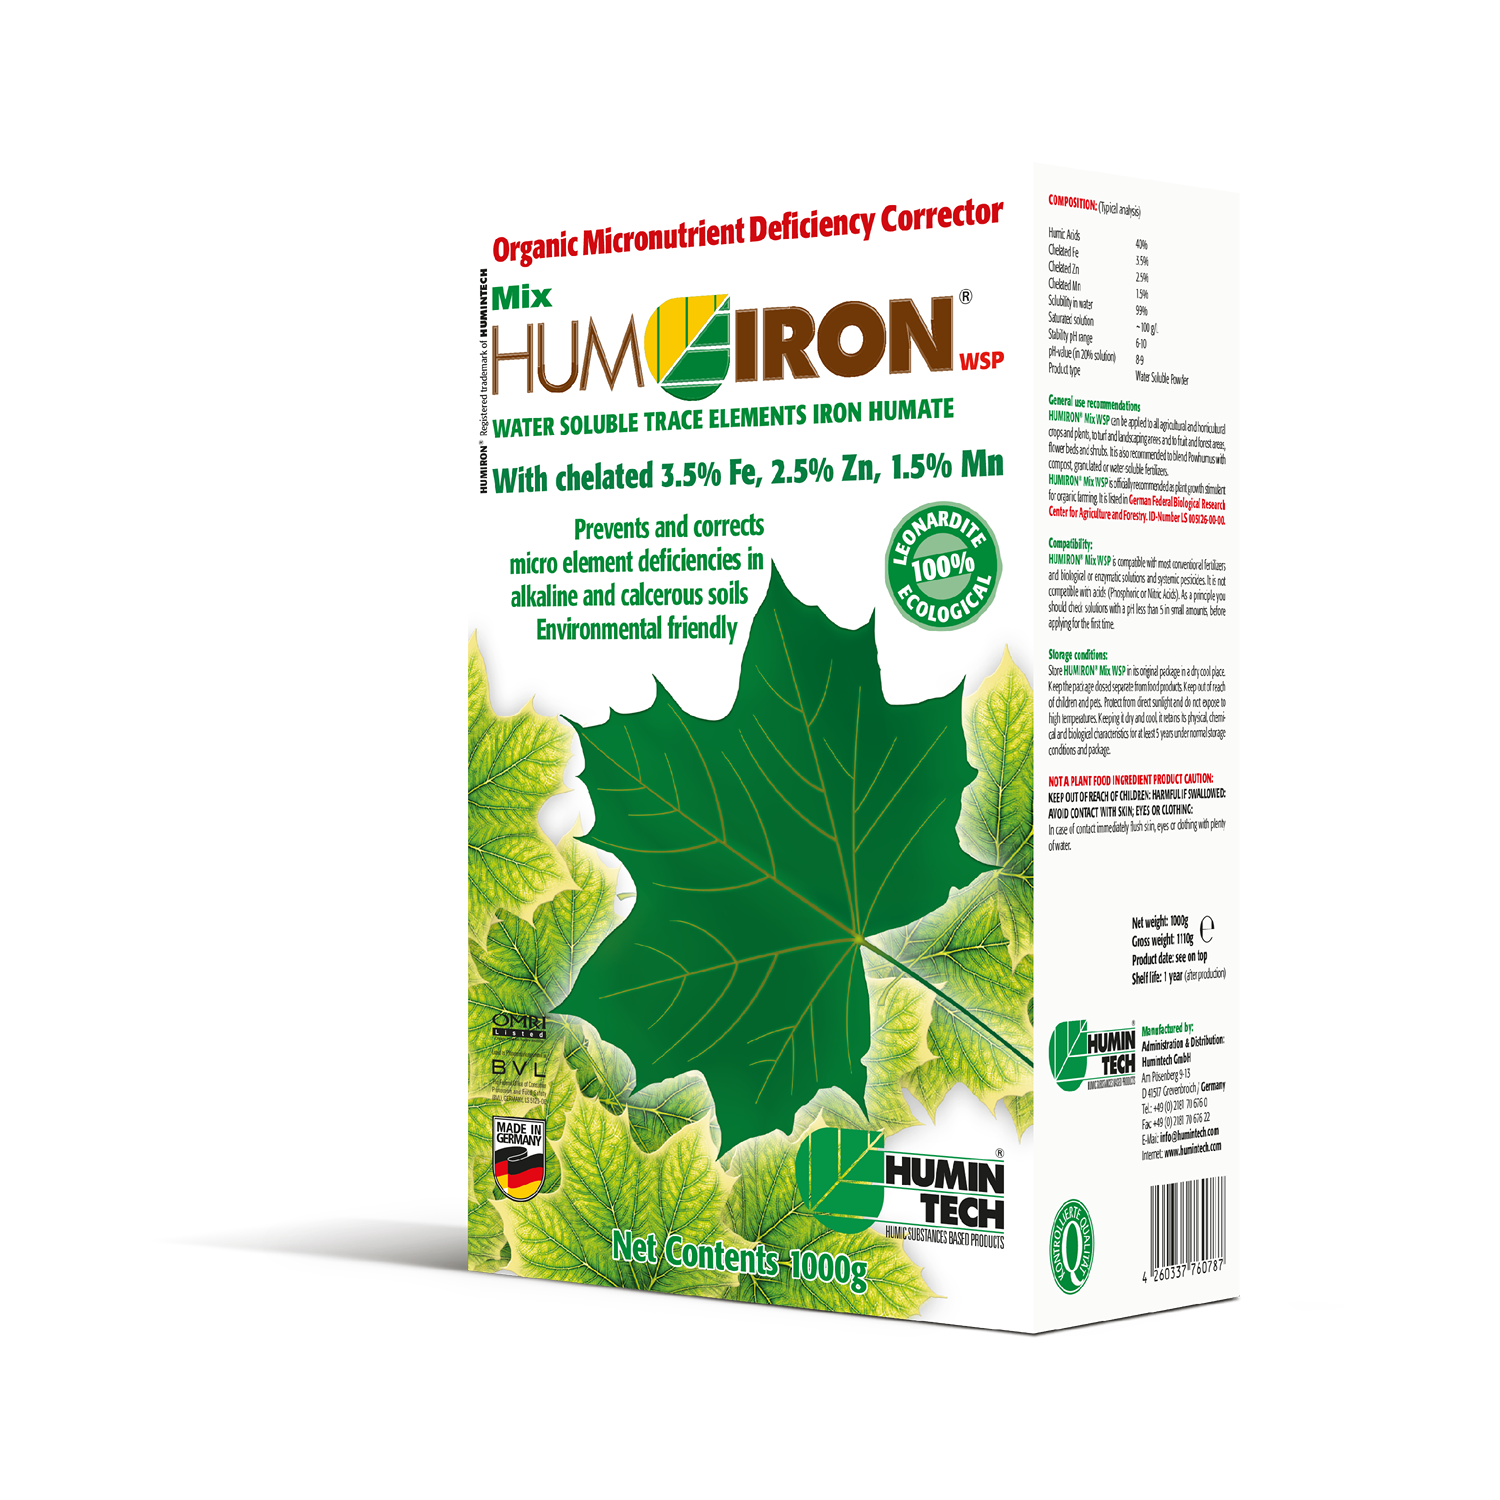 HUMIRON Mix WSP Organic Micronutrient Deficiency Corrector Water Soluble Trace Elements Humate box